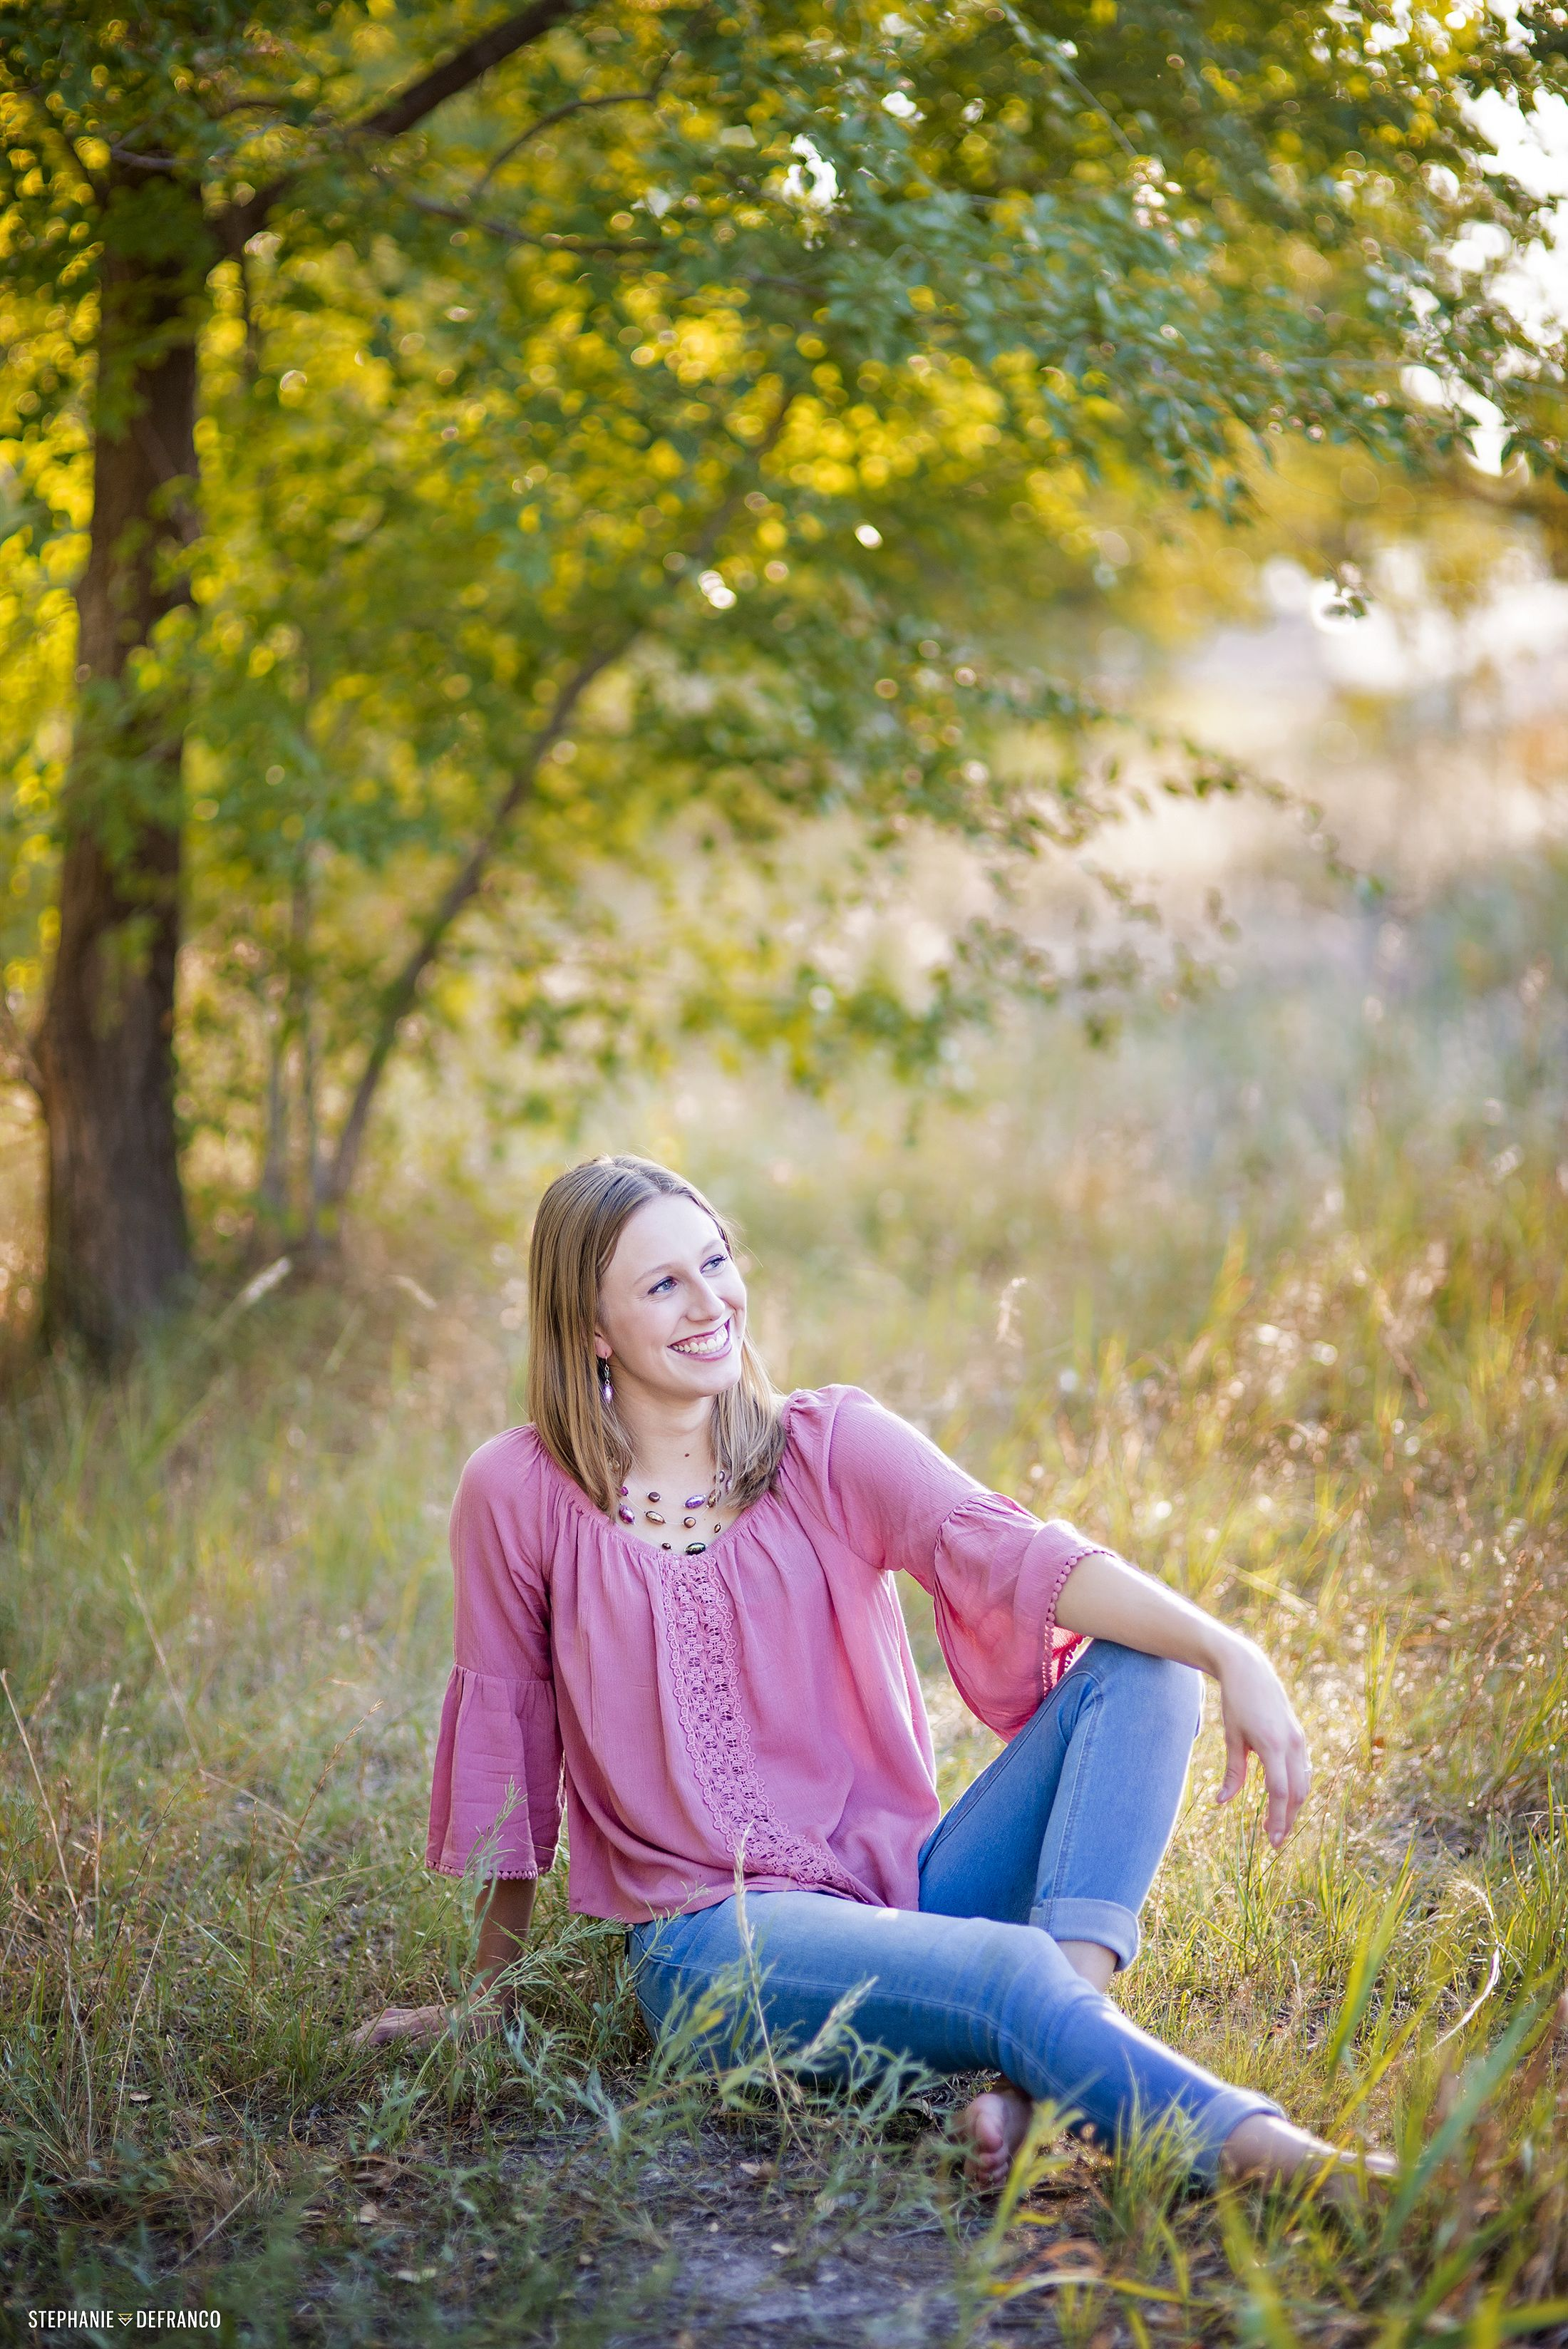 Pin on Stephanie Riedel Photography